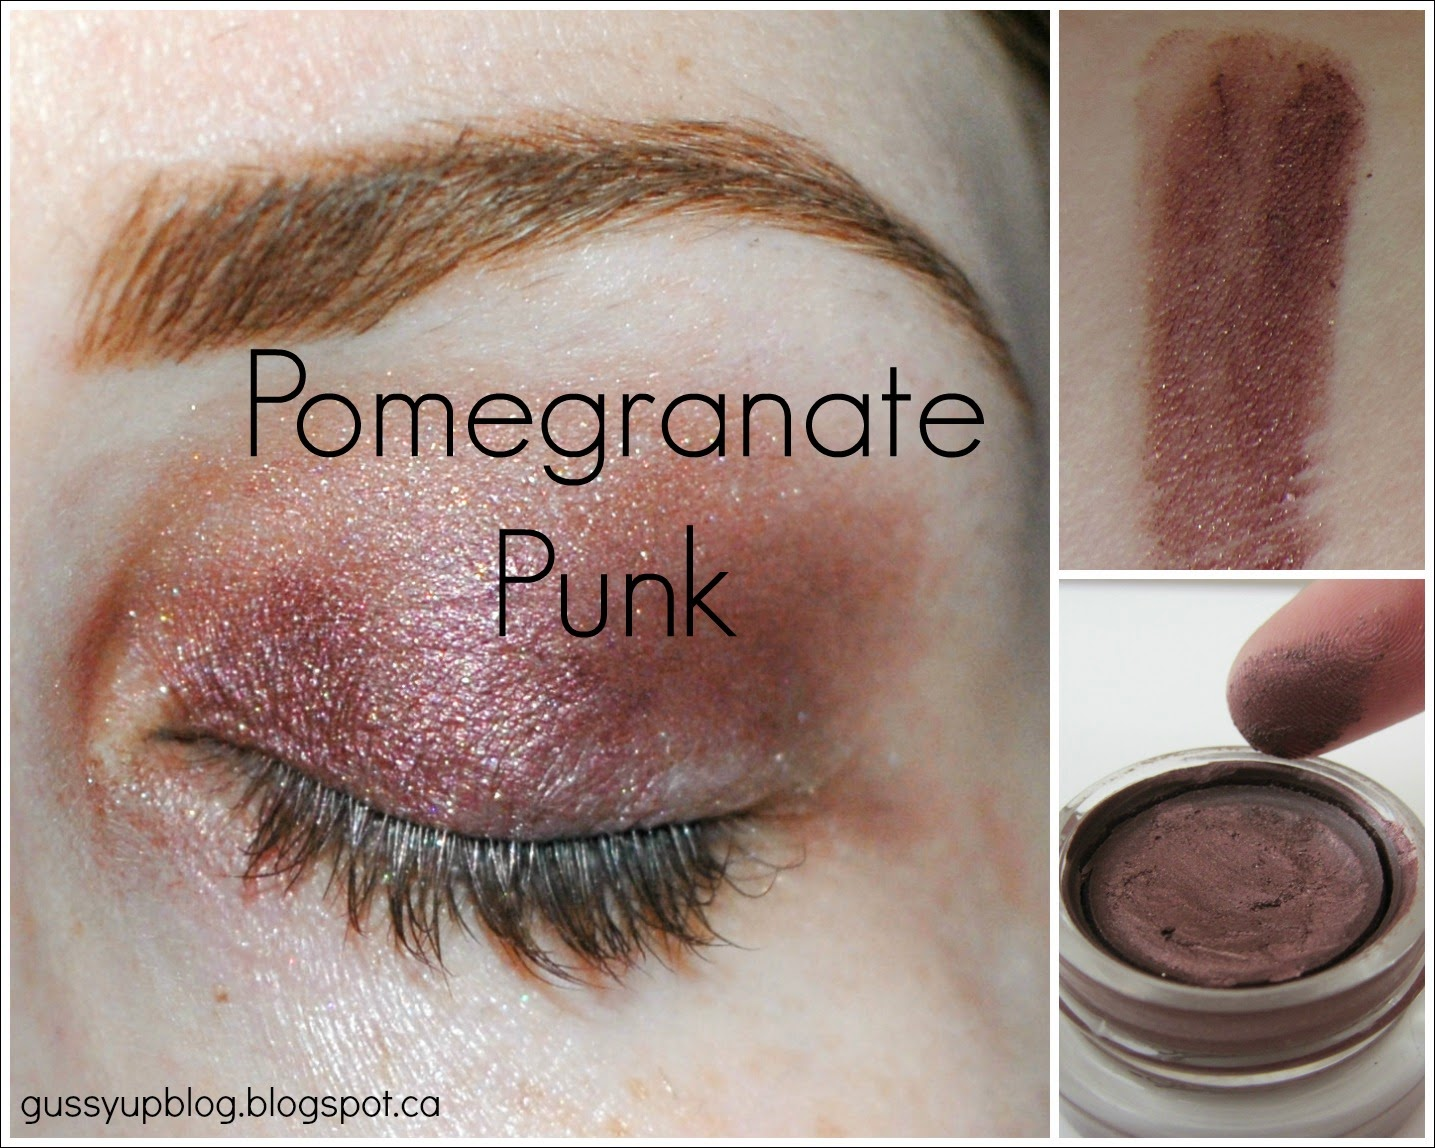 Maybelline Color Tattoo 24 Hour Eyeshadow, Pomegranate Punk, Review and Swatches